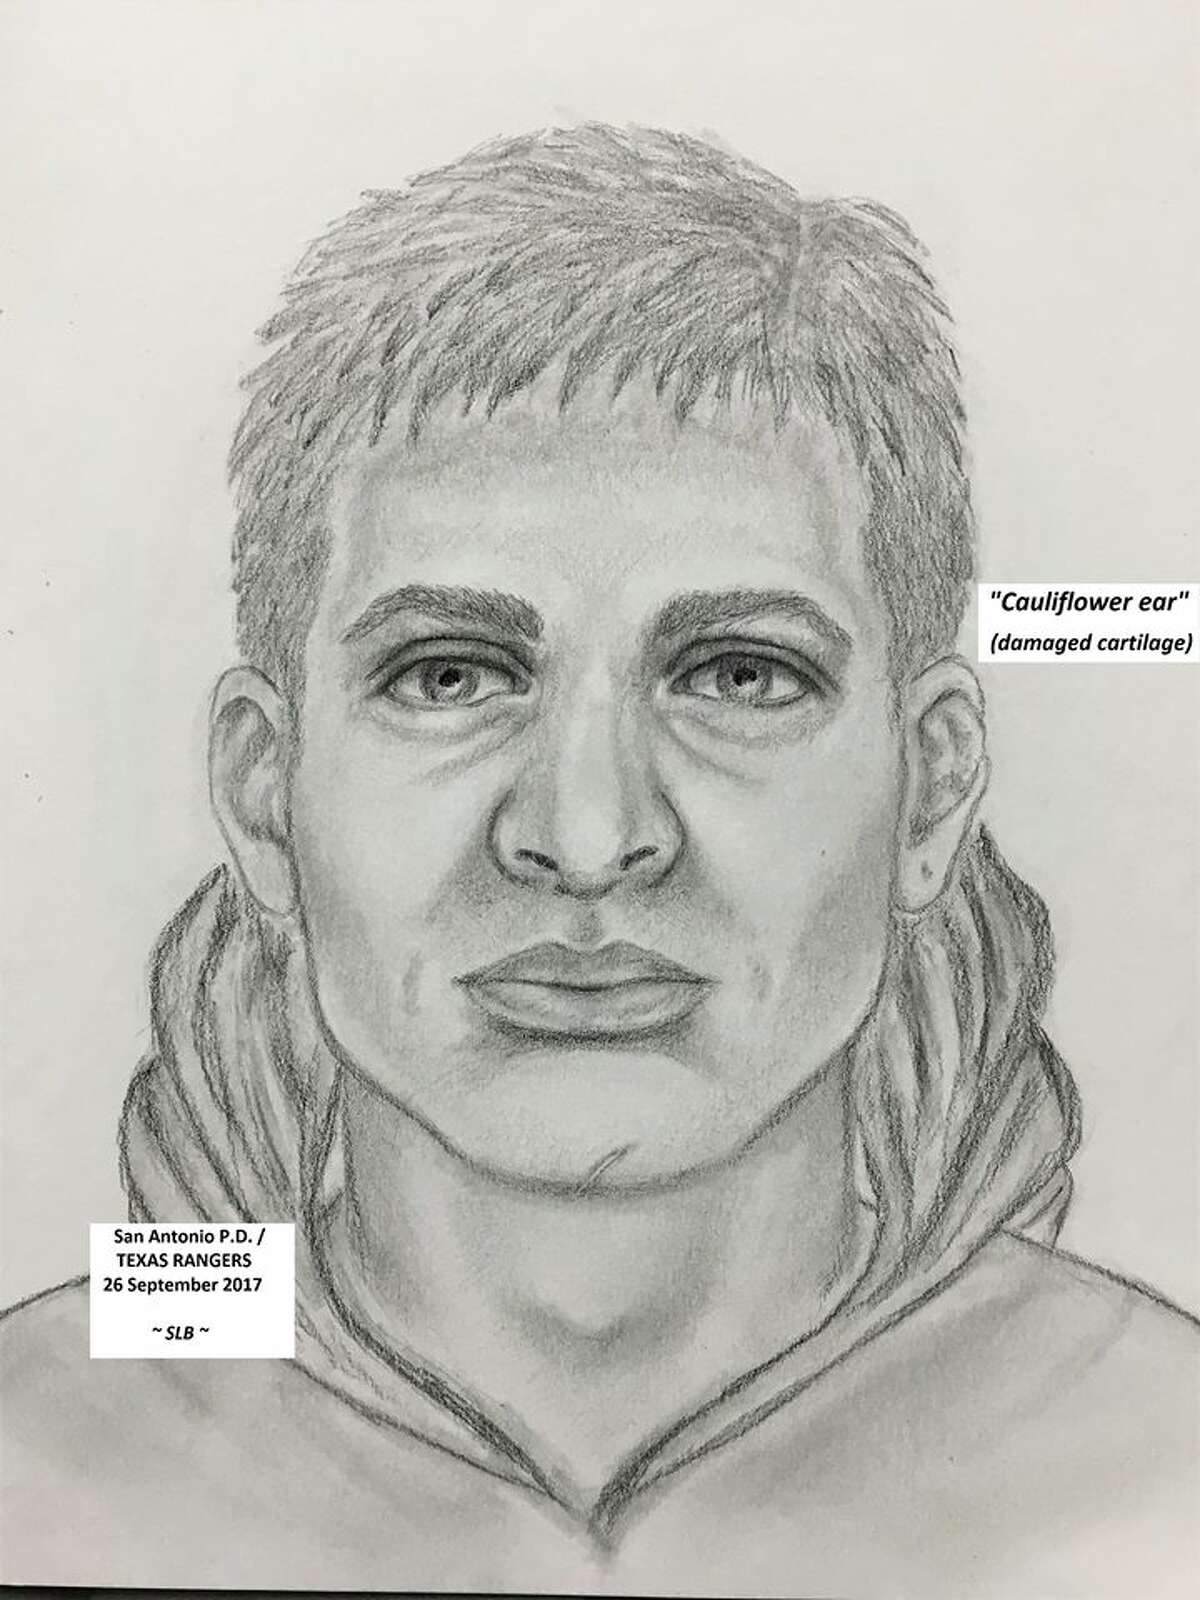 """The suspect is described as about 5 feet 9 inches to 6 feet 1 inch tall. He has a strong, stocky build with light colored hair in """"messy layers."""""""